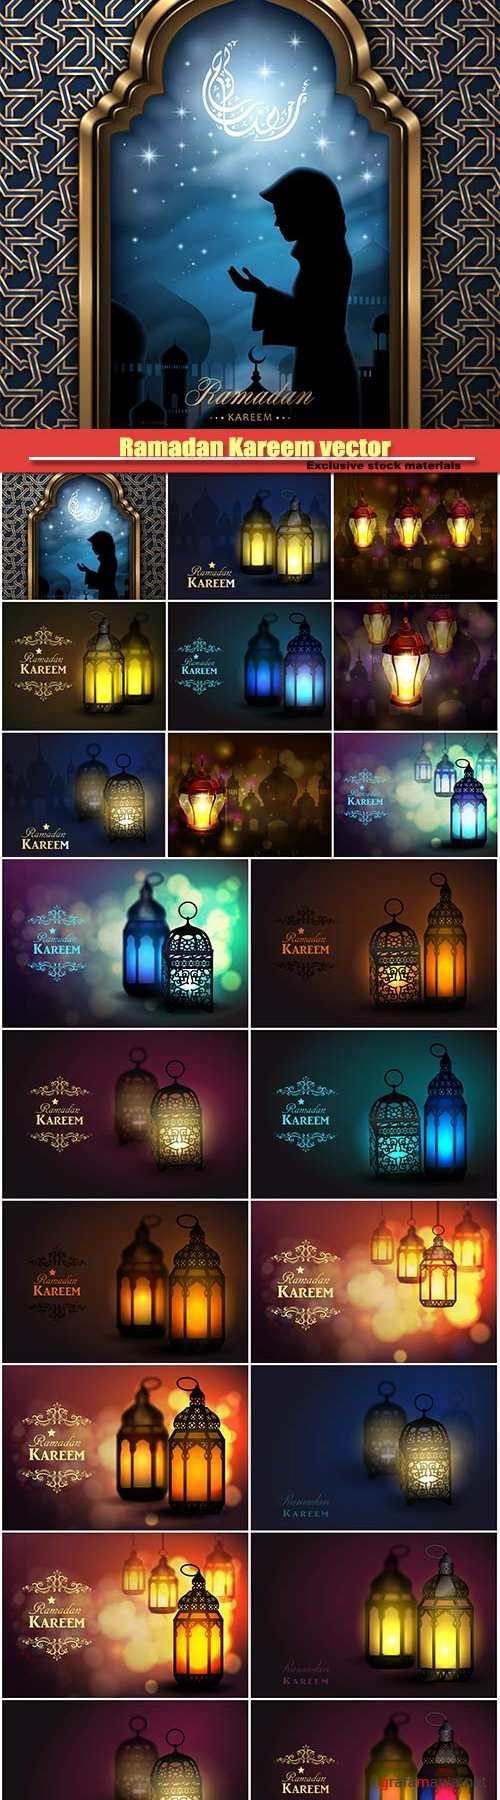 Arabic lamps with lights for Ramadan Kareem vector